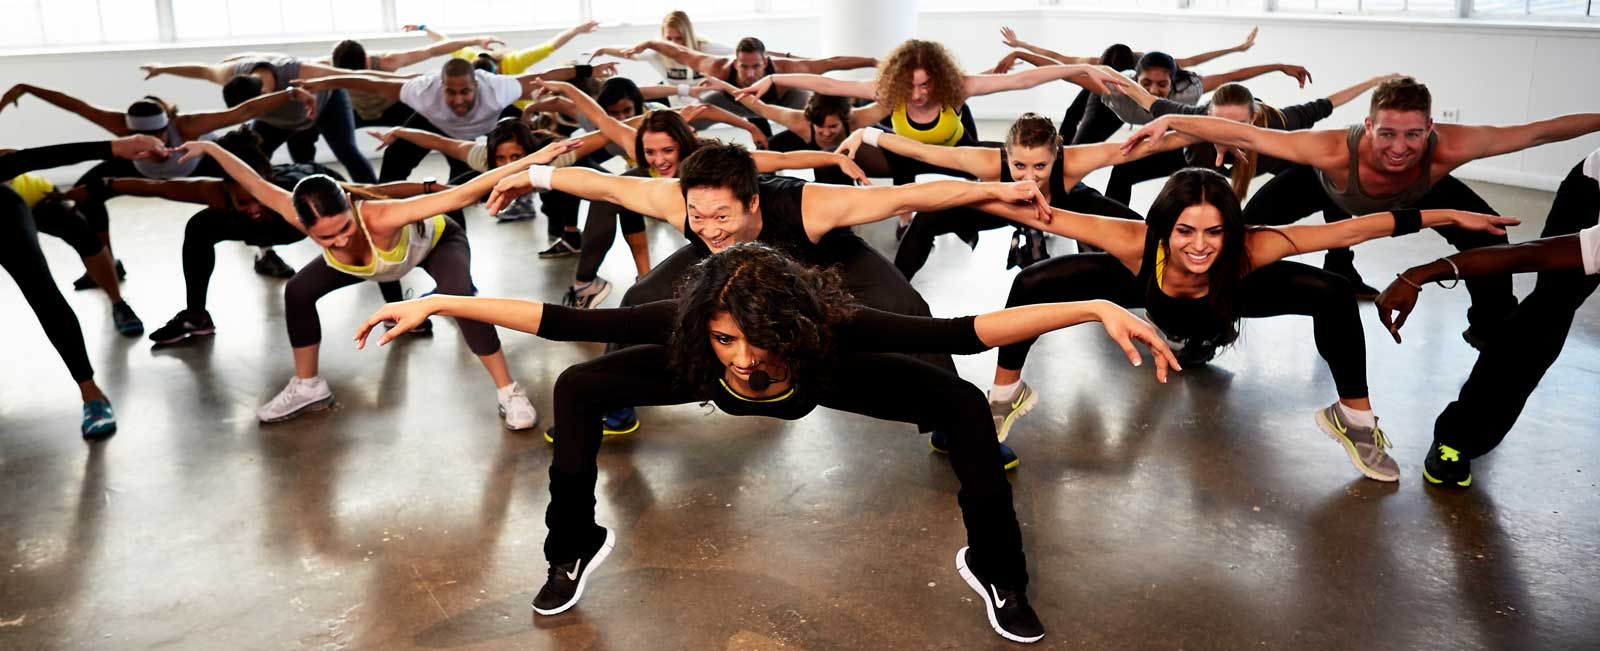 Find bollyx classes events and instructors near you